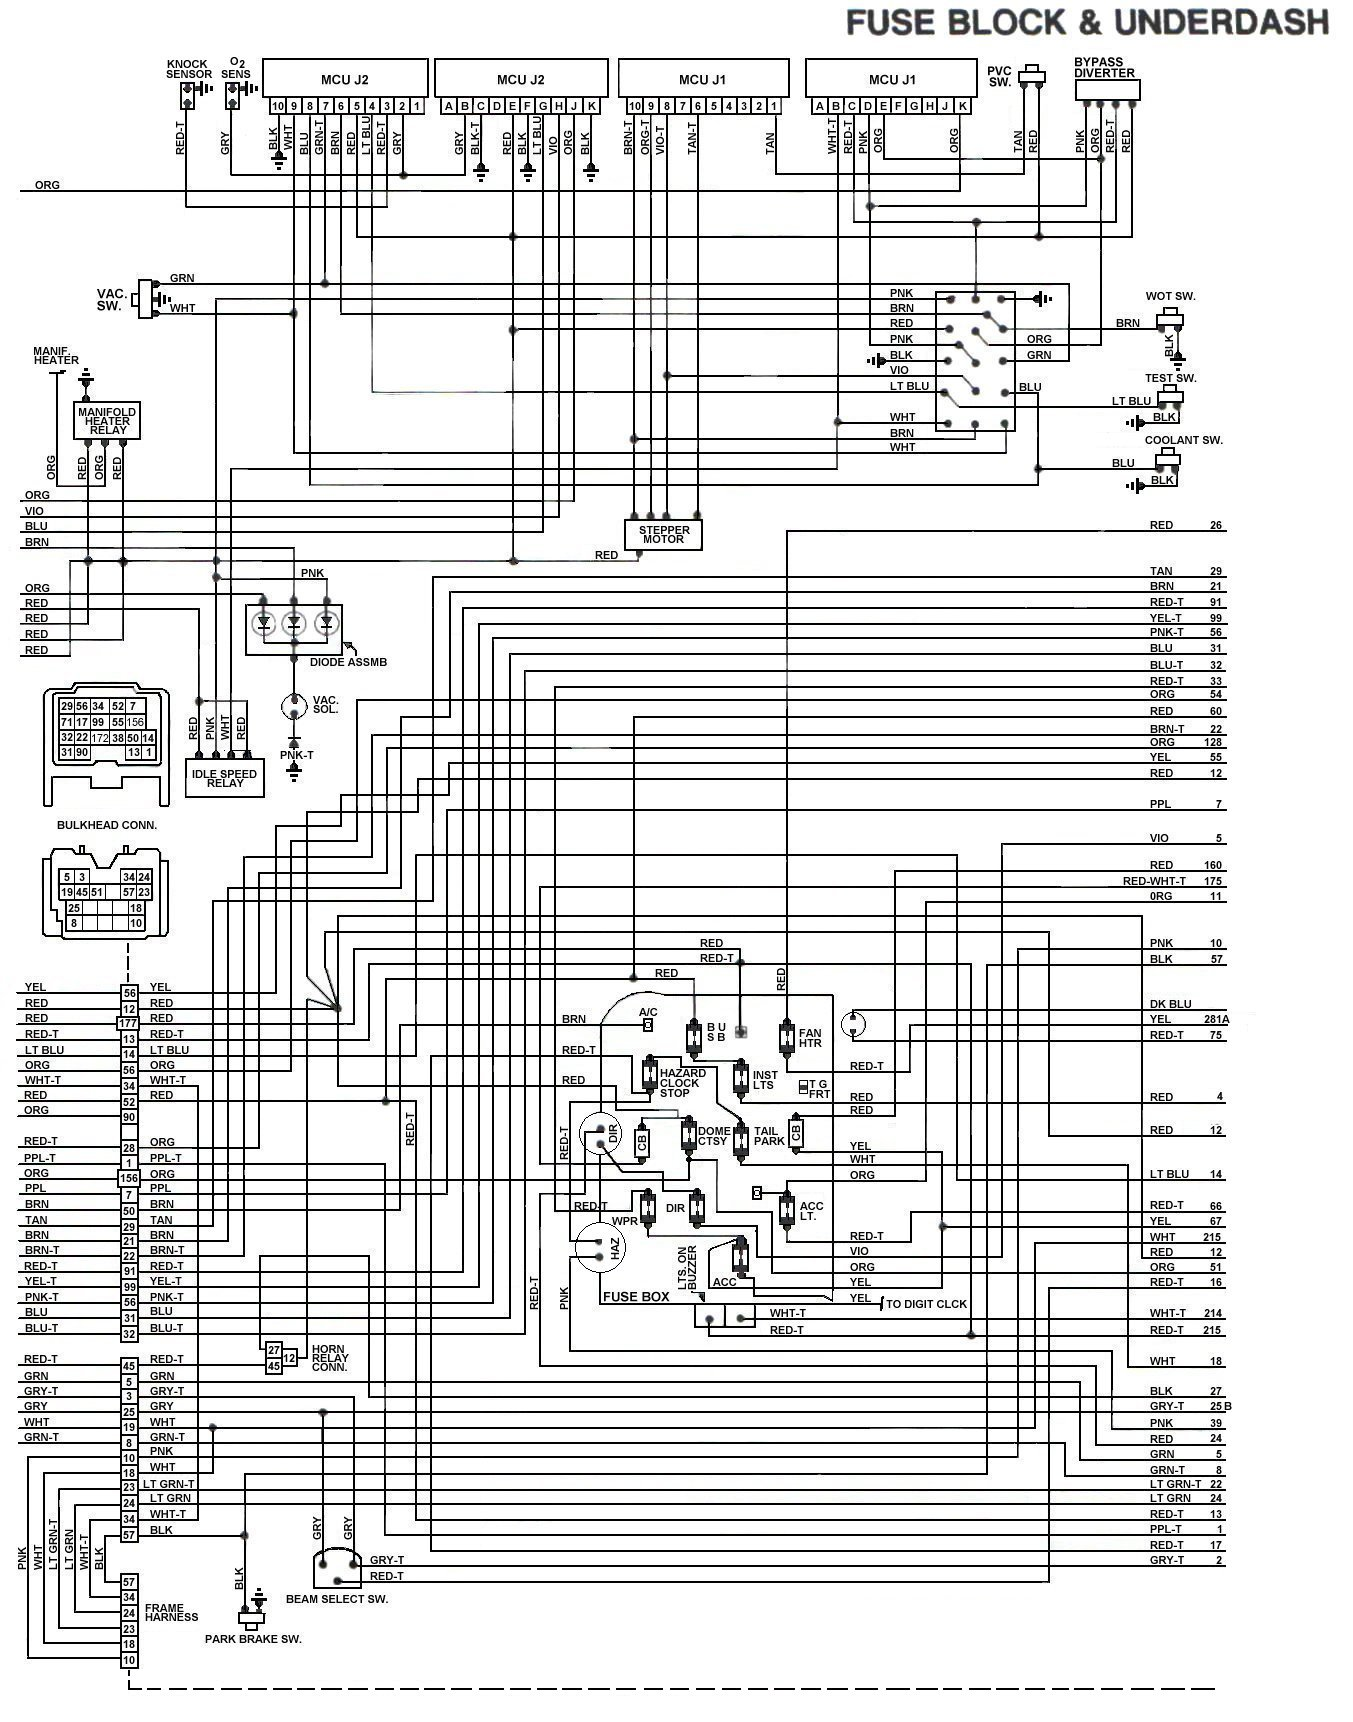 83_FSJ_WiringDiagram_FuseBlock Underdash tom 'oljeep' collins fsj wiring page 1968 Chevy C10 Wiring-Diagram at mifinder.co